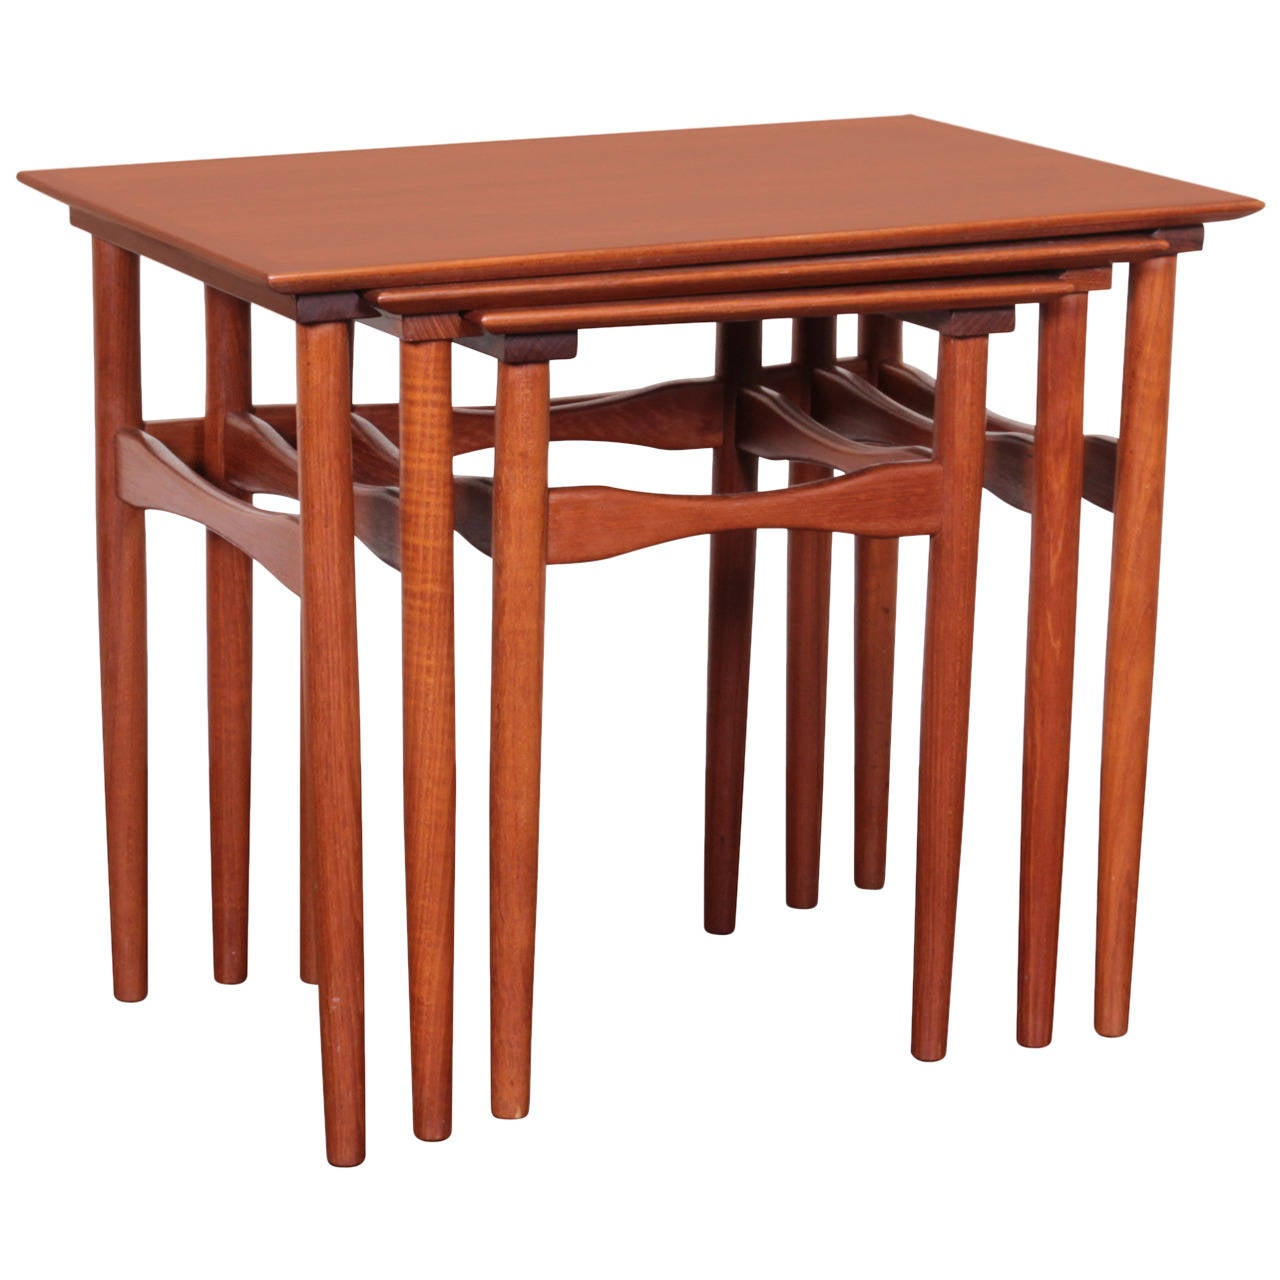 Teak Nesting Tables ~ Mid century modern danish teak nesting tables by fabian at